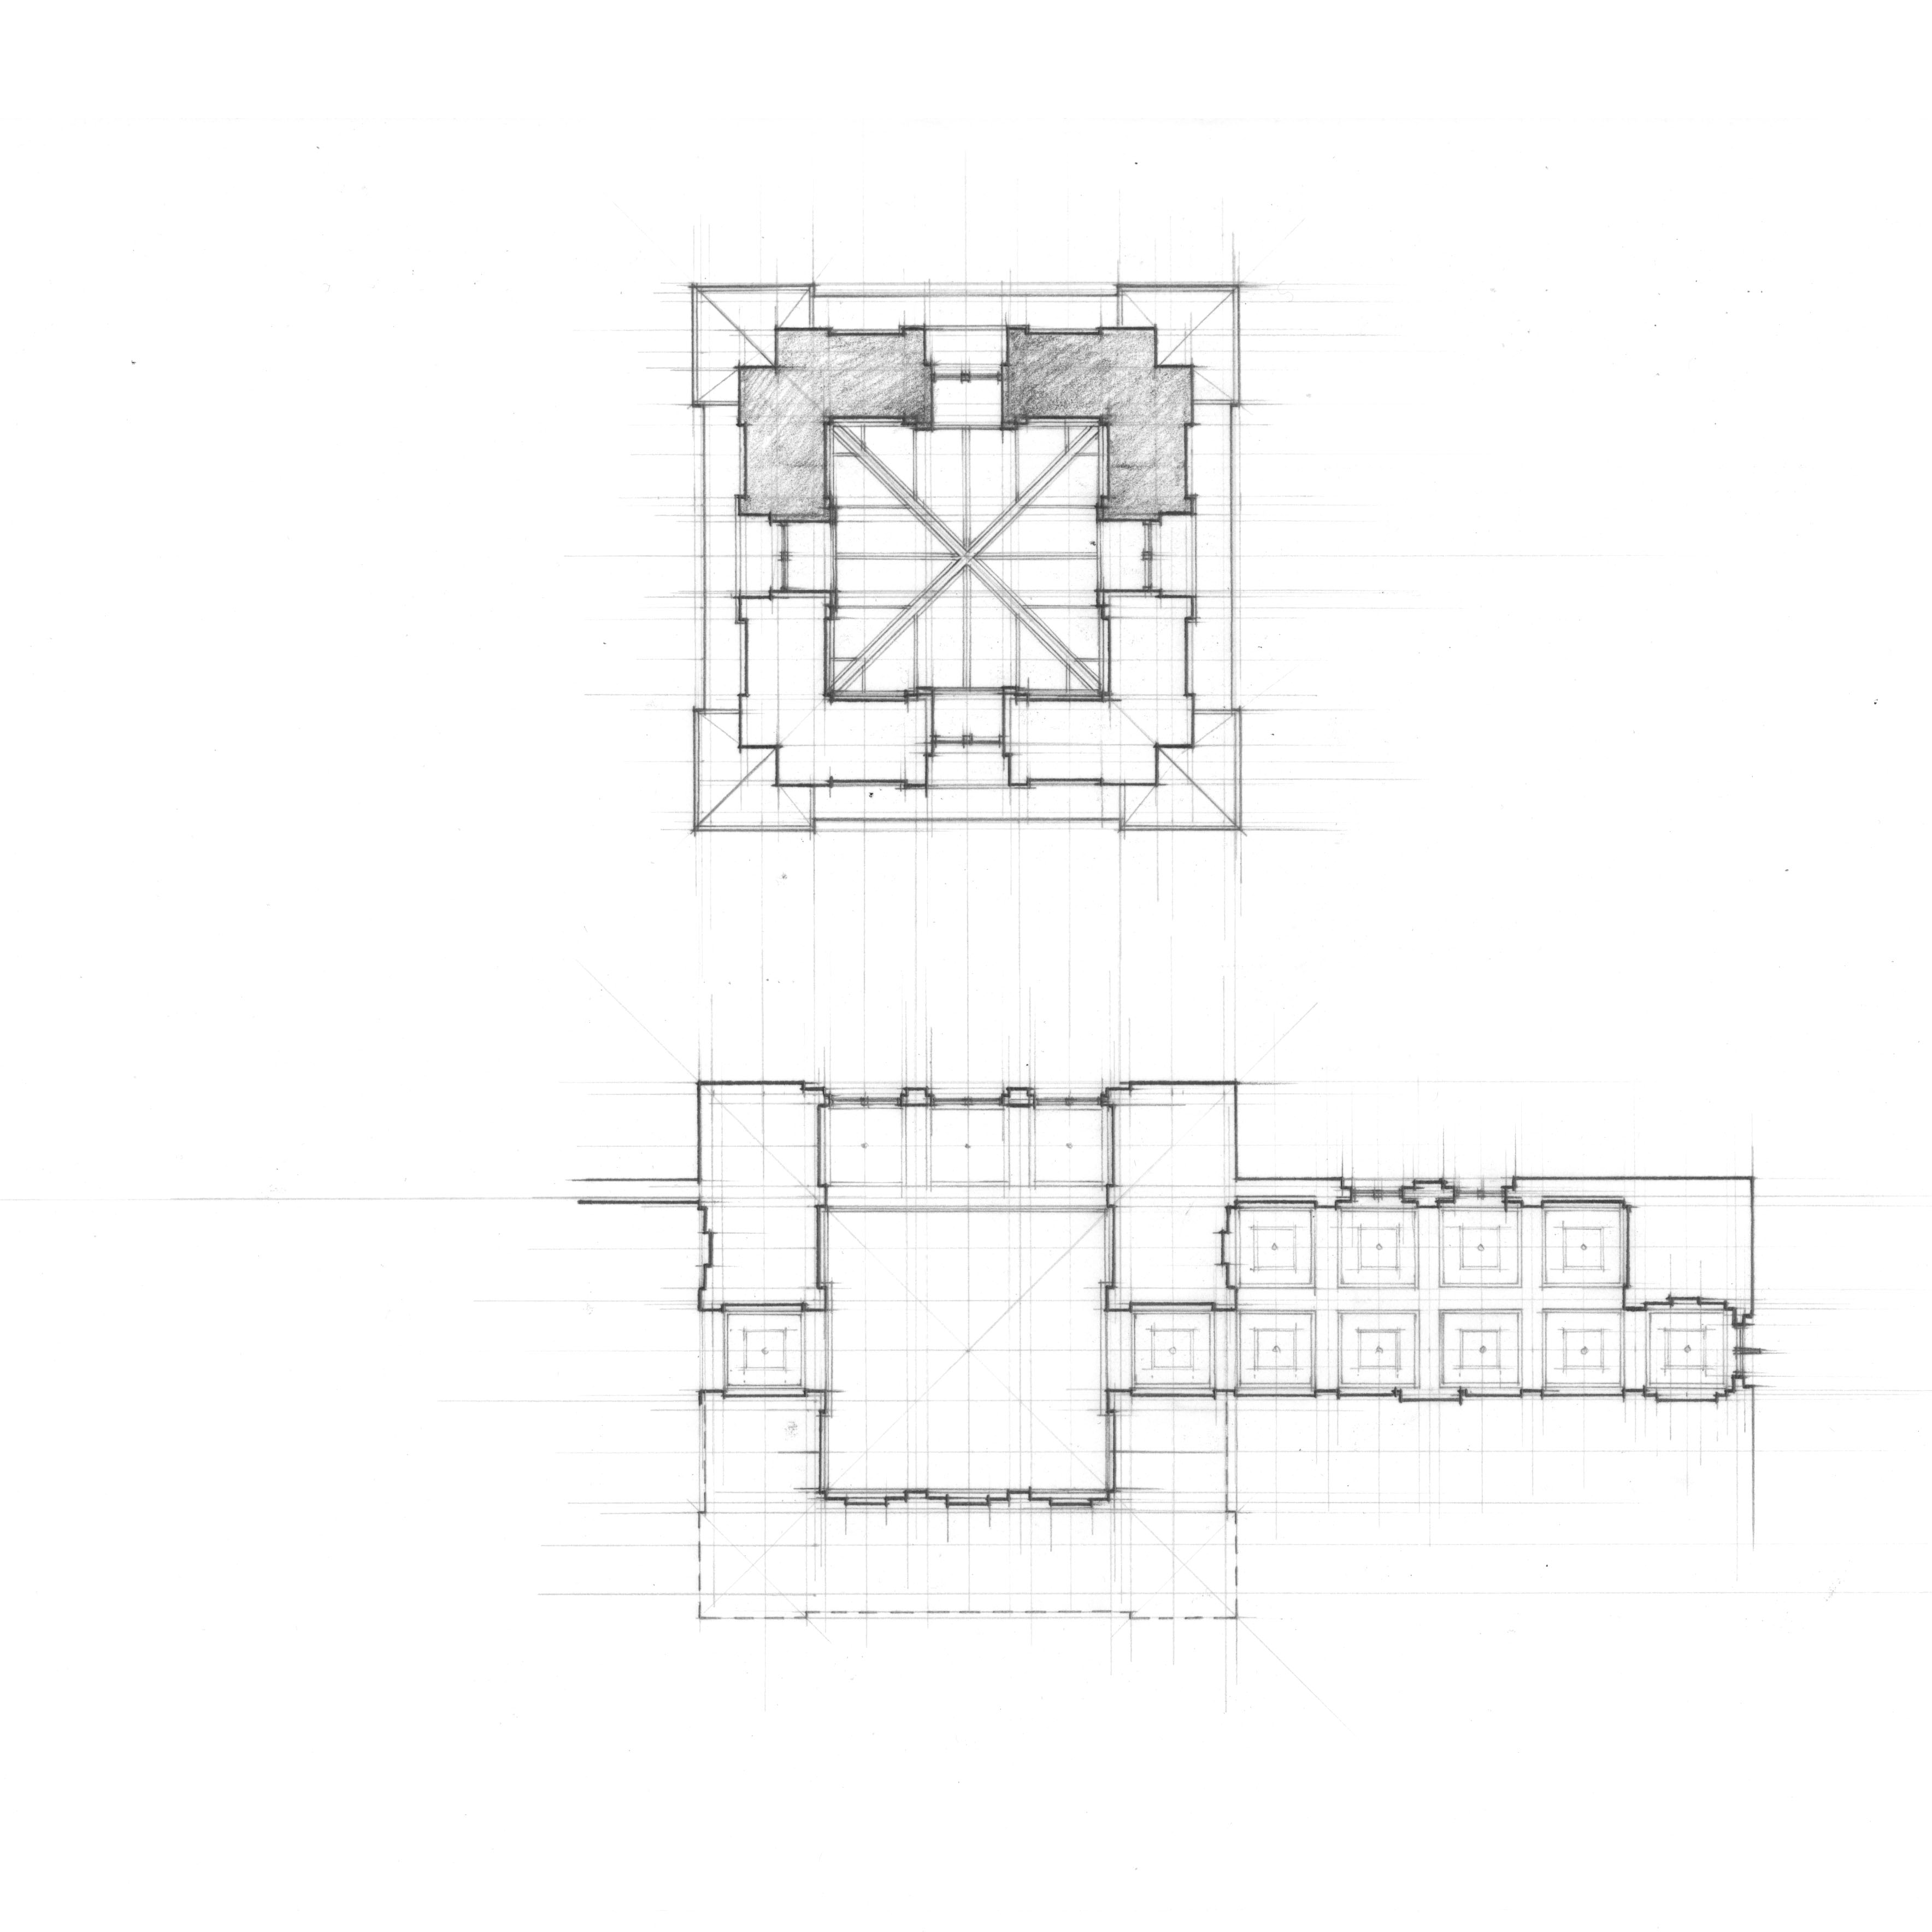 Federal Building And Courthouse Nicholas S Coleman Cupola Schematic Study Of Tower Courtroom Waiting Room